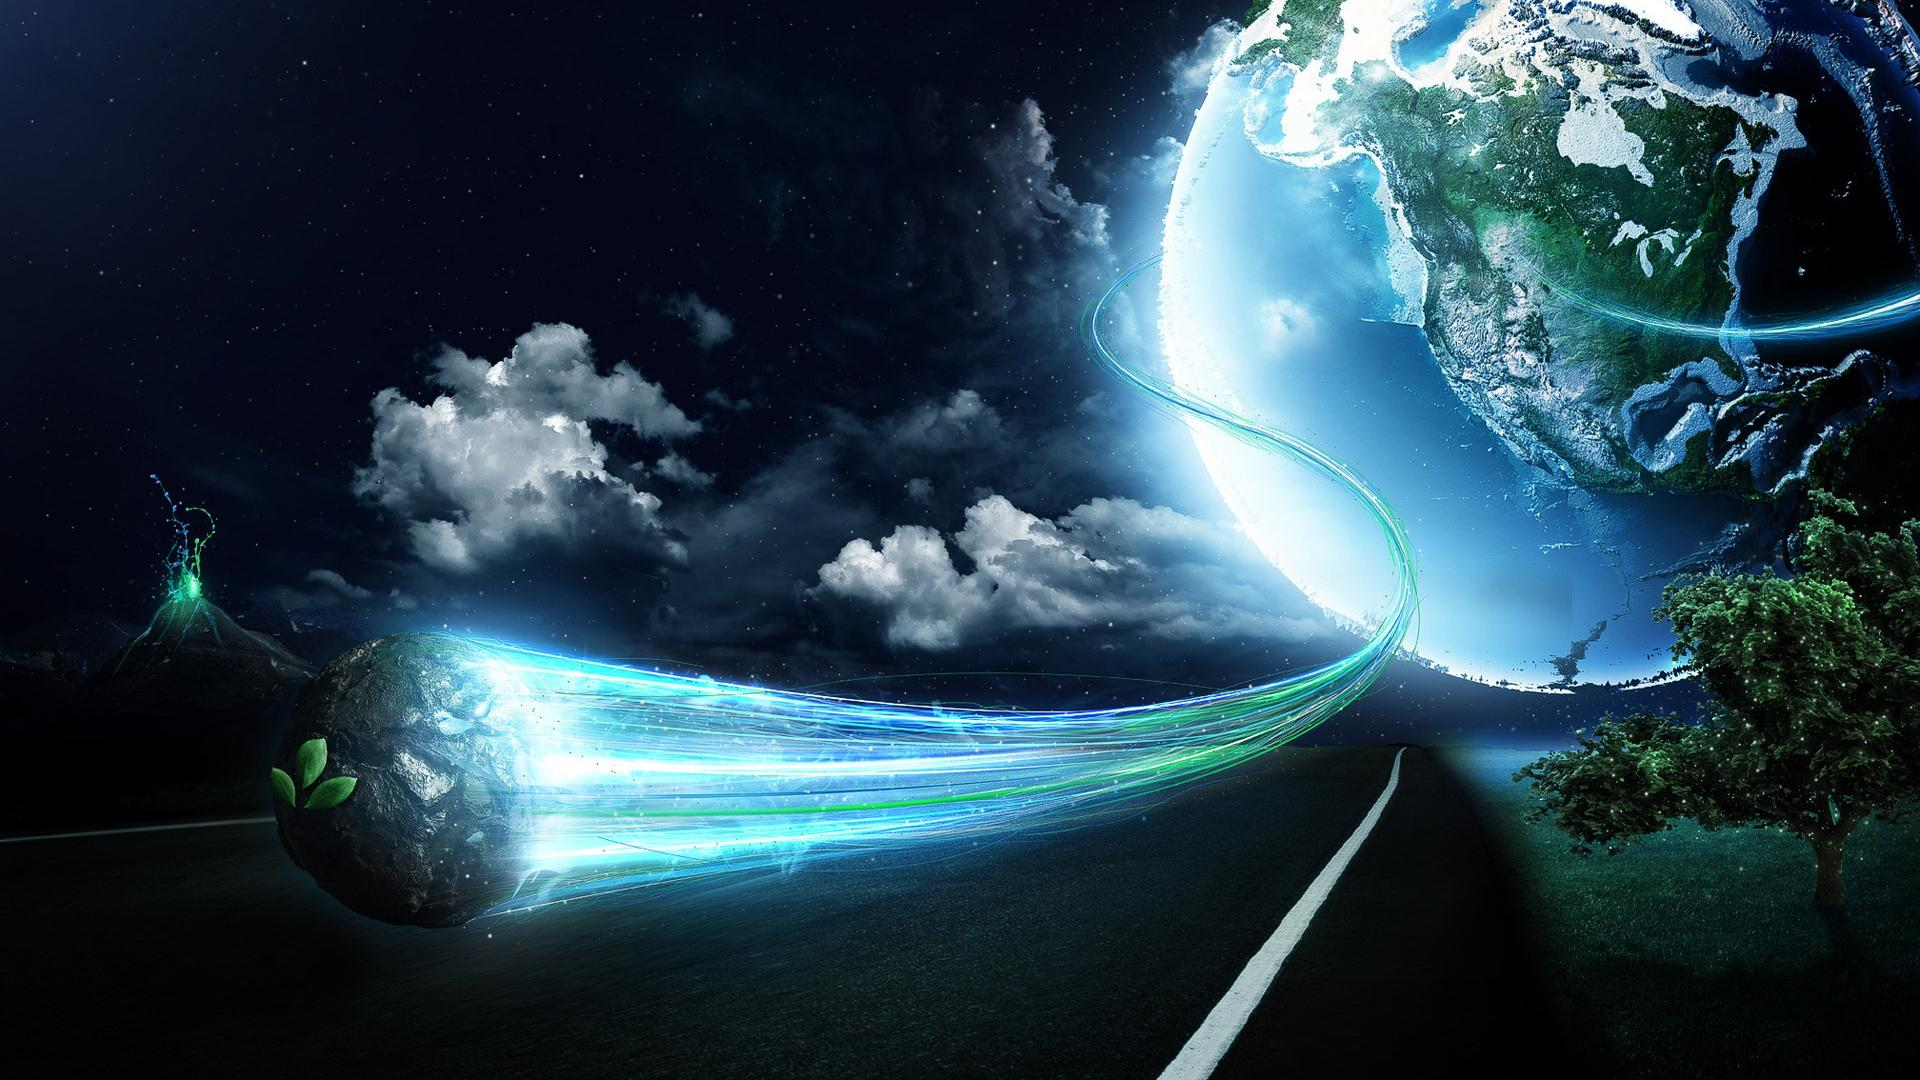 Earth Space Cool Pictures HD Wallpaper of Galaxy   hdwallpaper2013com 1920x1080